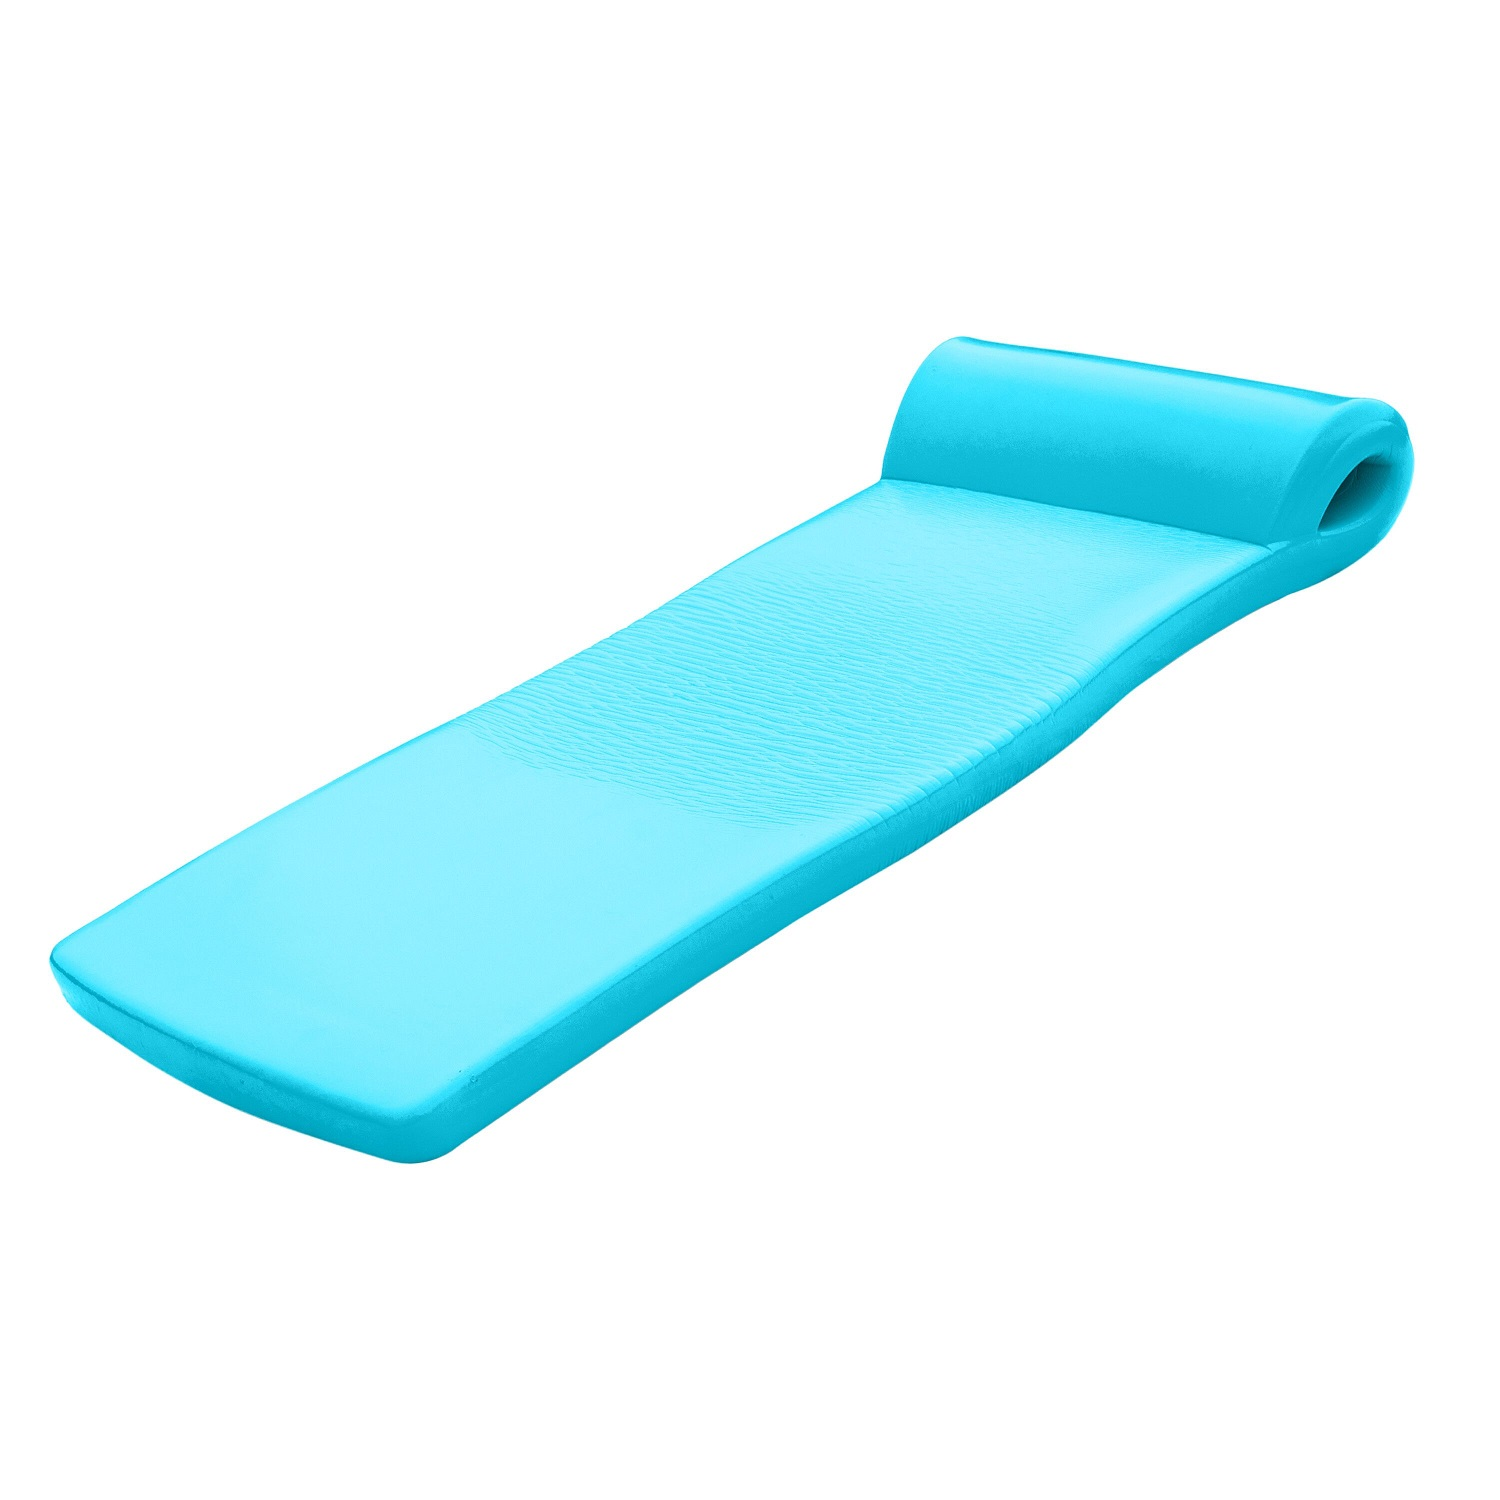 TRC Recreation Ultra Sunsation Float - Tropical Teal